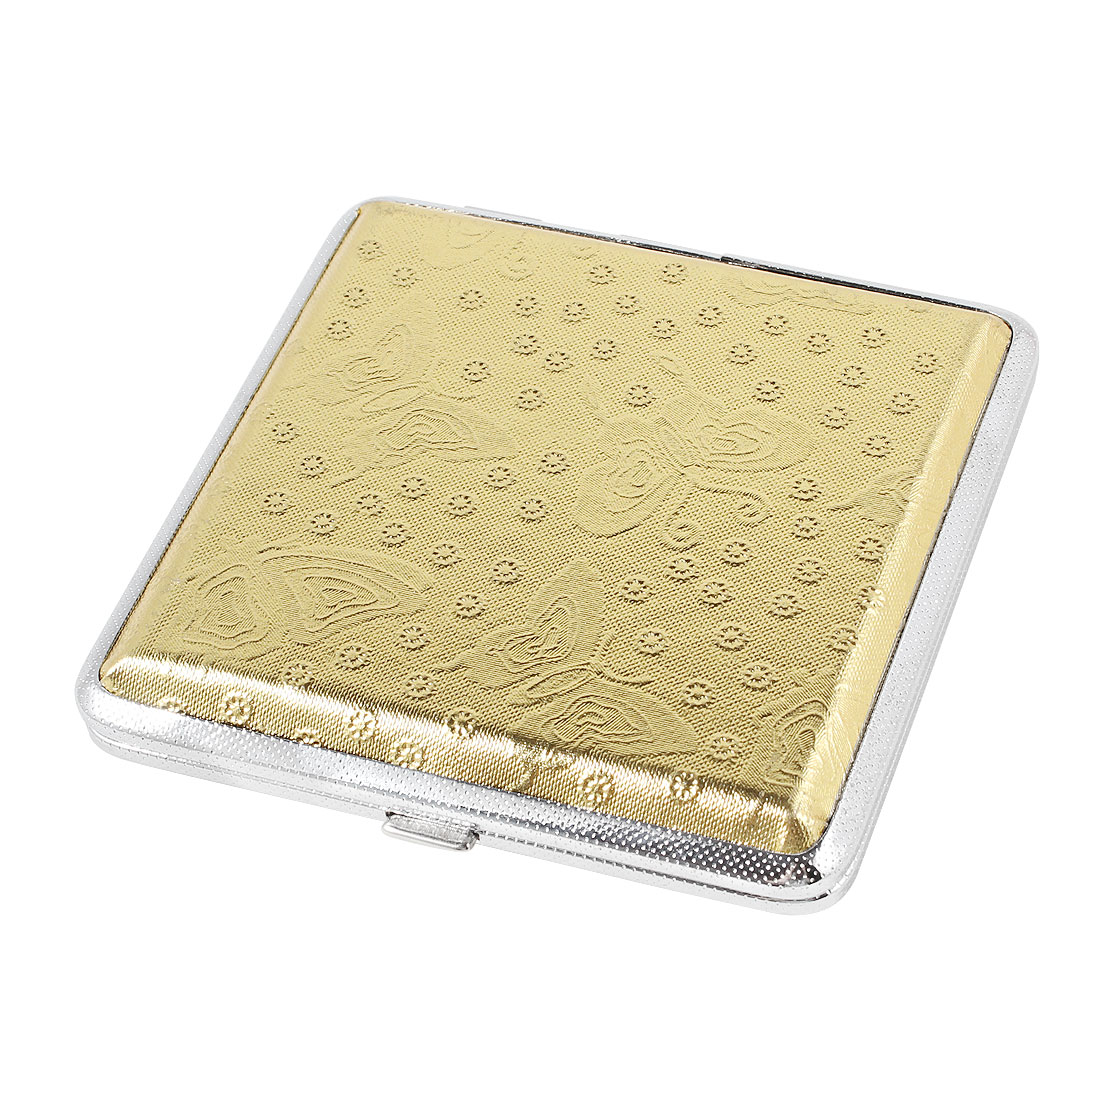 Cigarette Cigar Tobacco Carry Case Holder Box w/Two Sided Golden Butterfly Pattern Cover